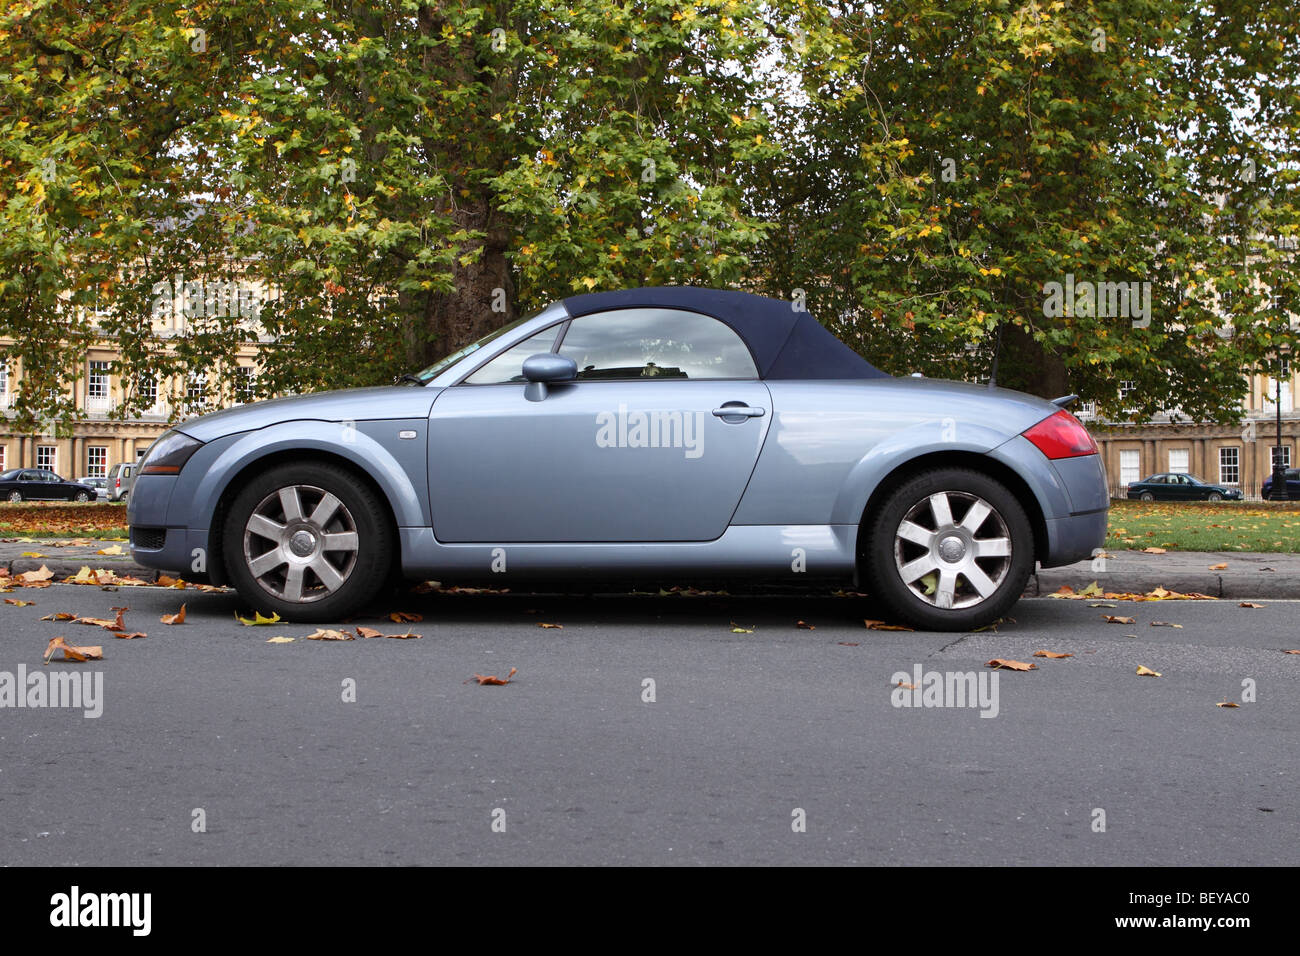 Audi TT Roadster soft top sports car parked among Autumn leaves at The Circus in Bath England October 2009 - Stock Image